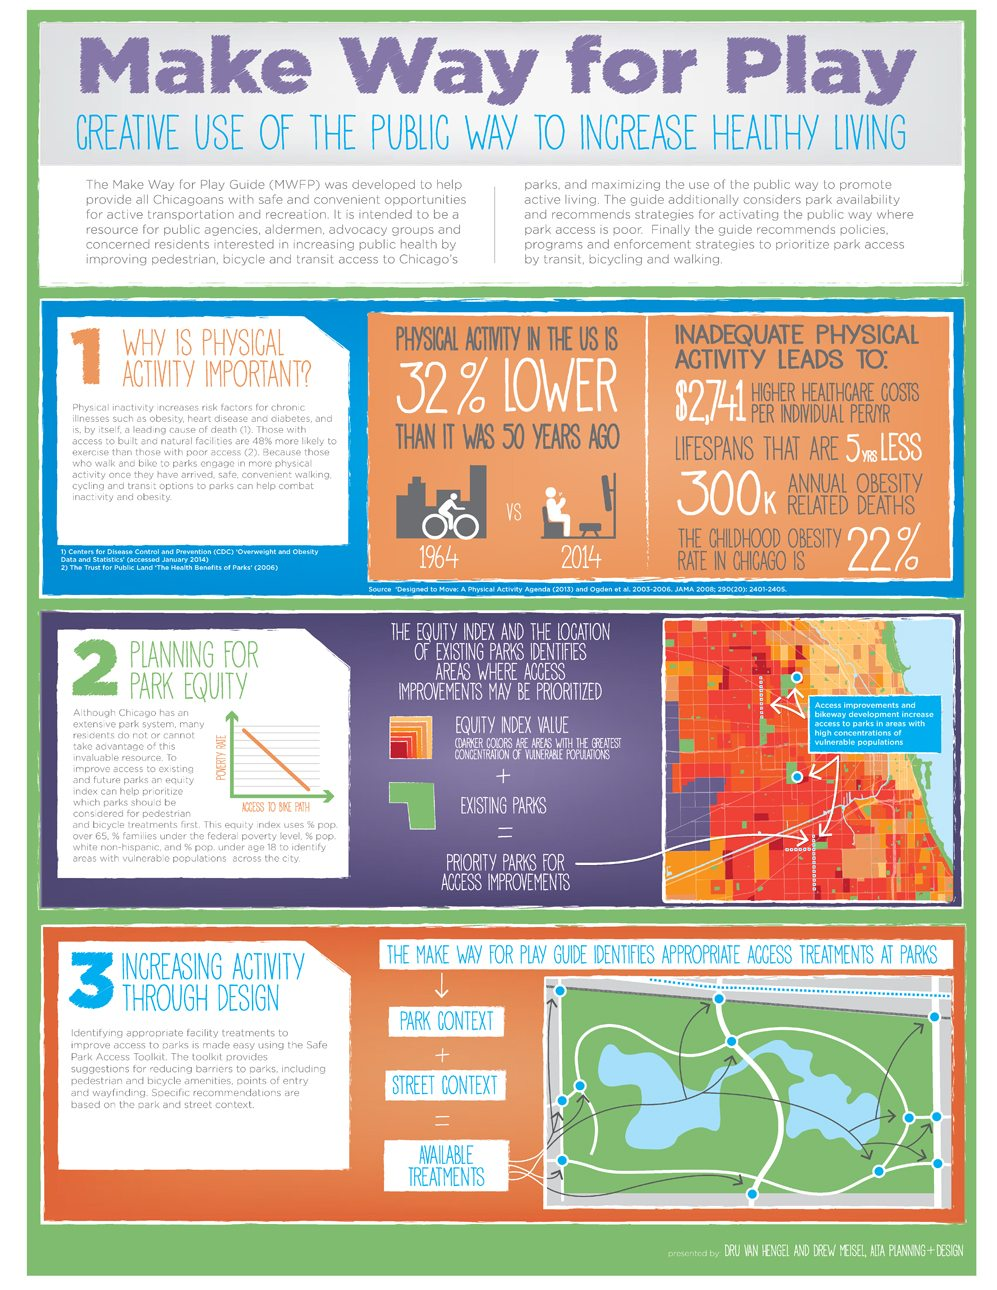 TRB_Make Way for Play Infographic